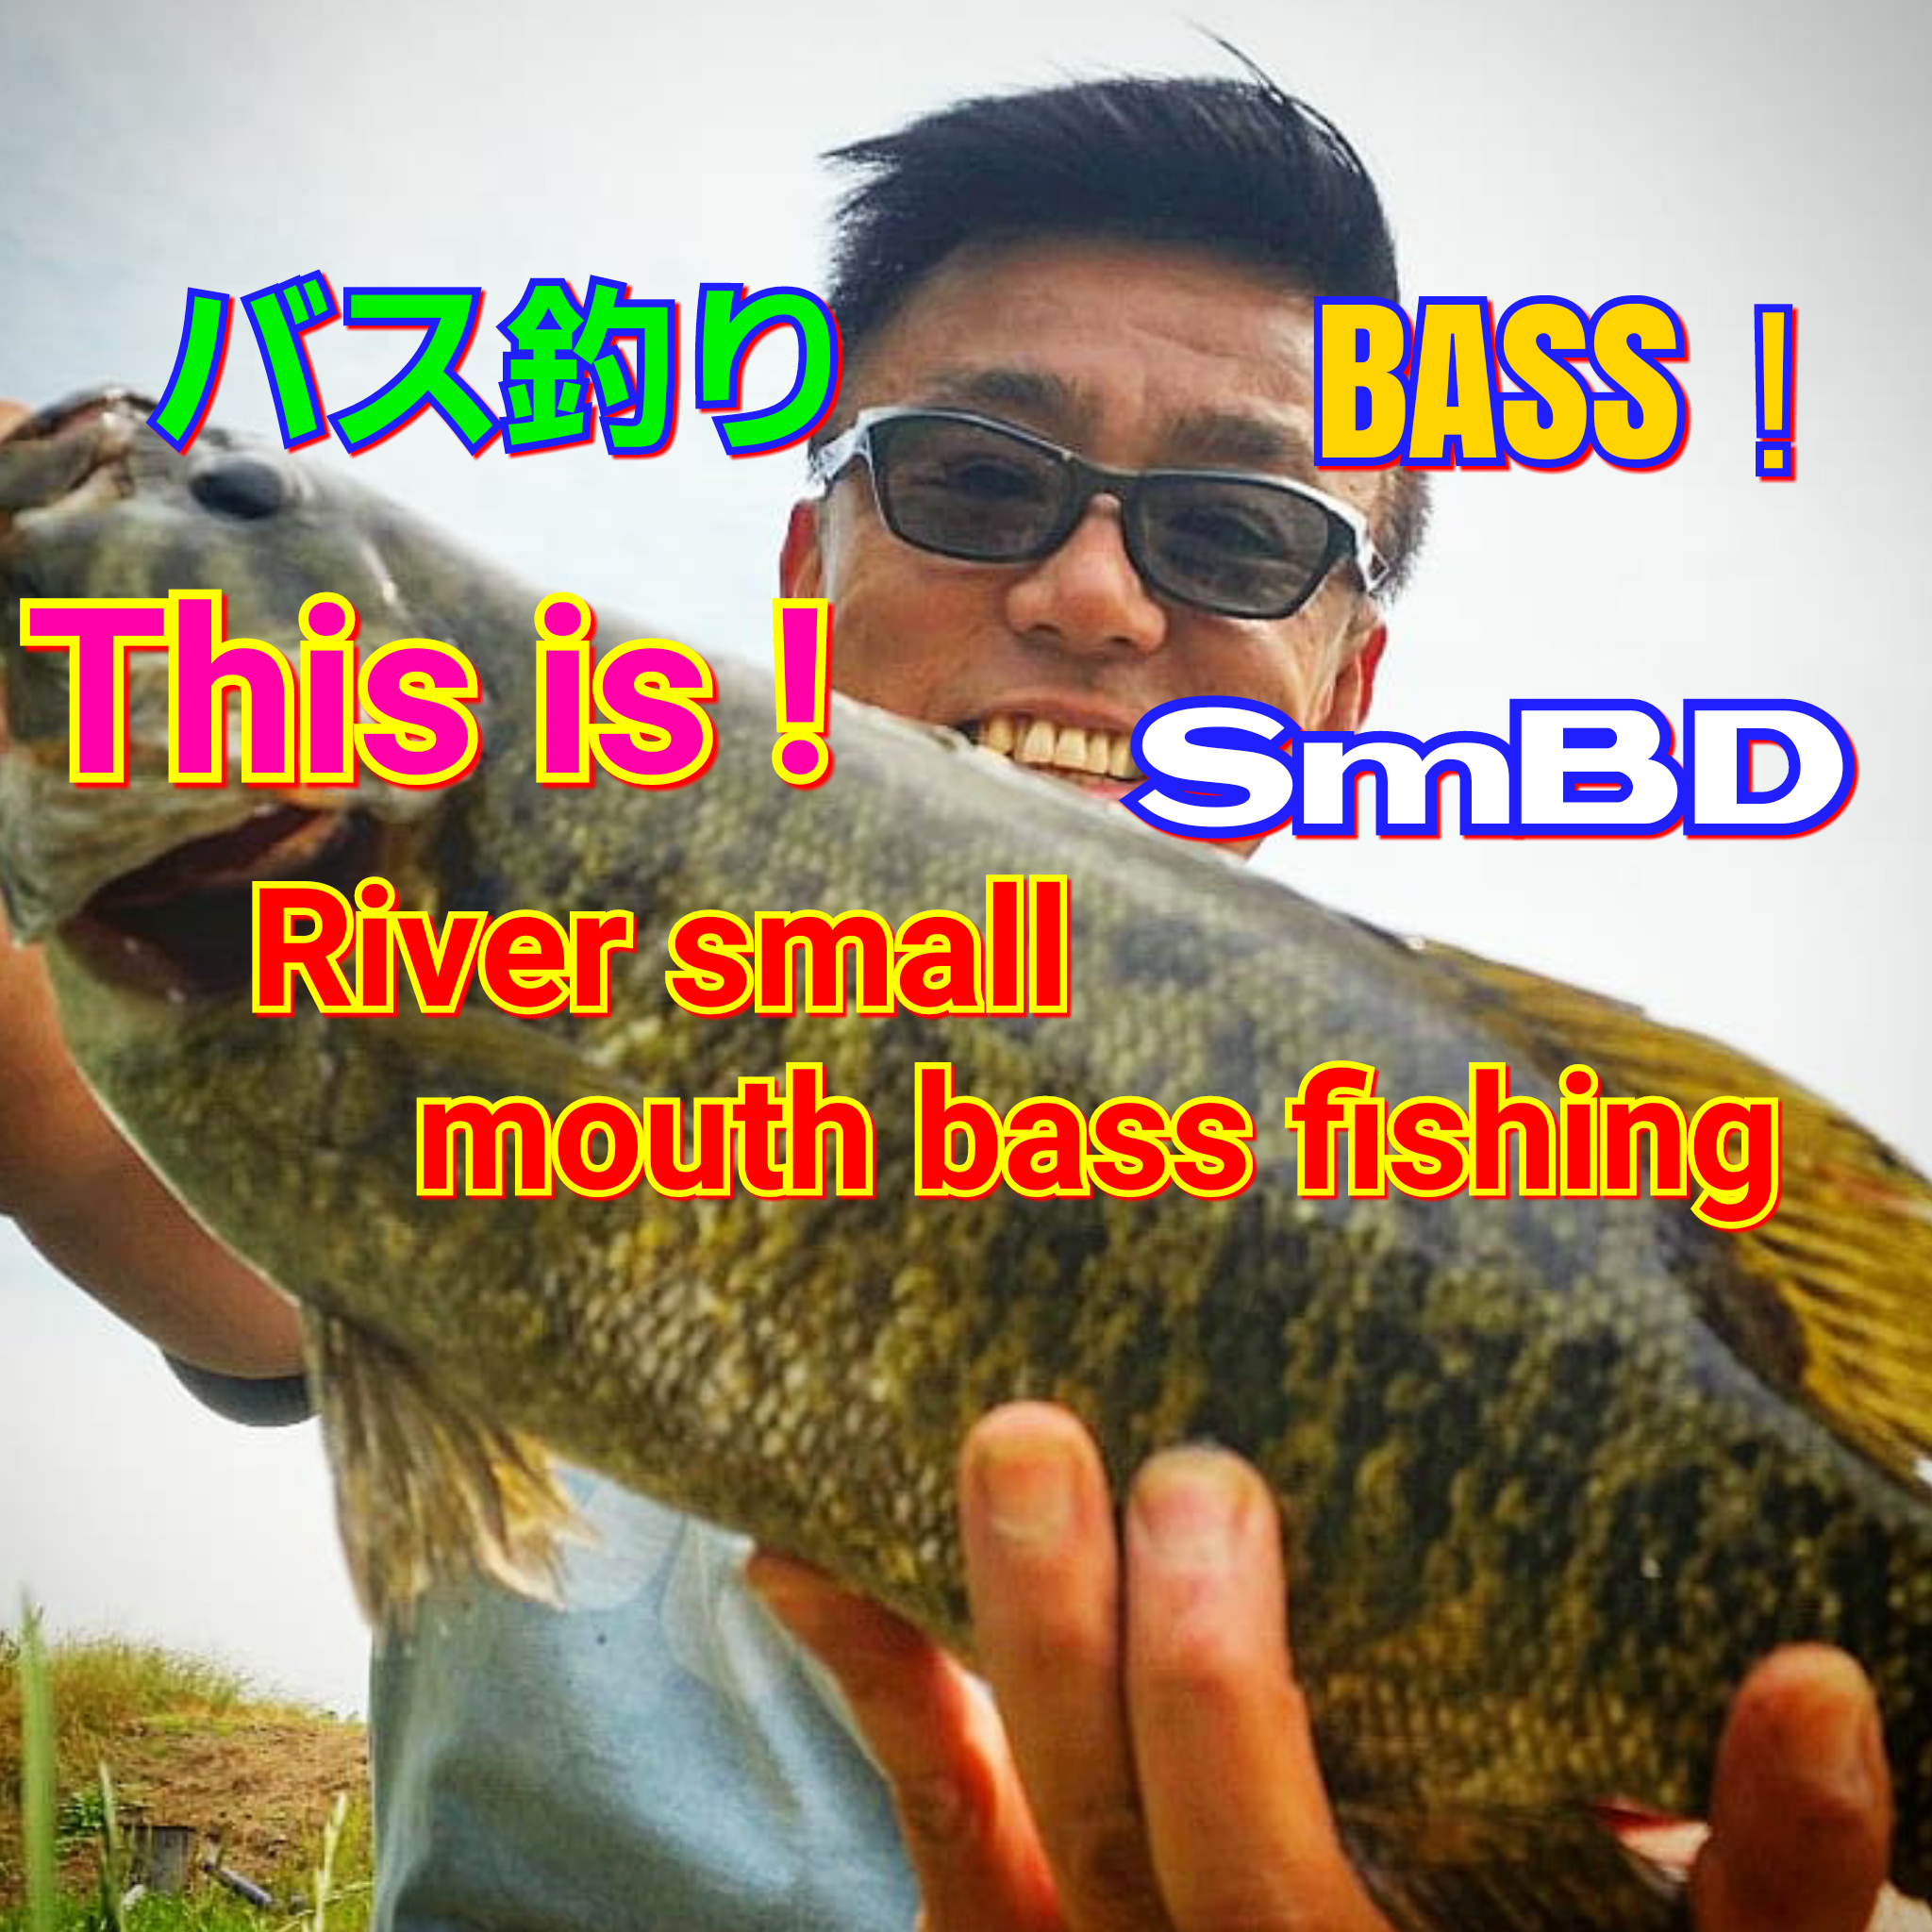 【117話】動画『This is river smallmouth bass!』フォロー